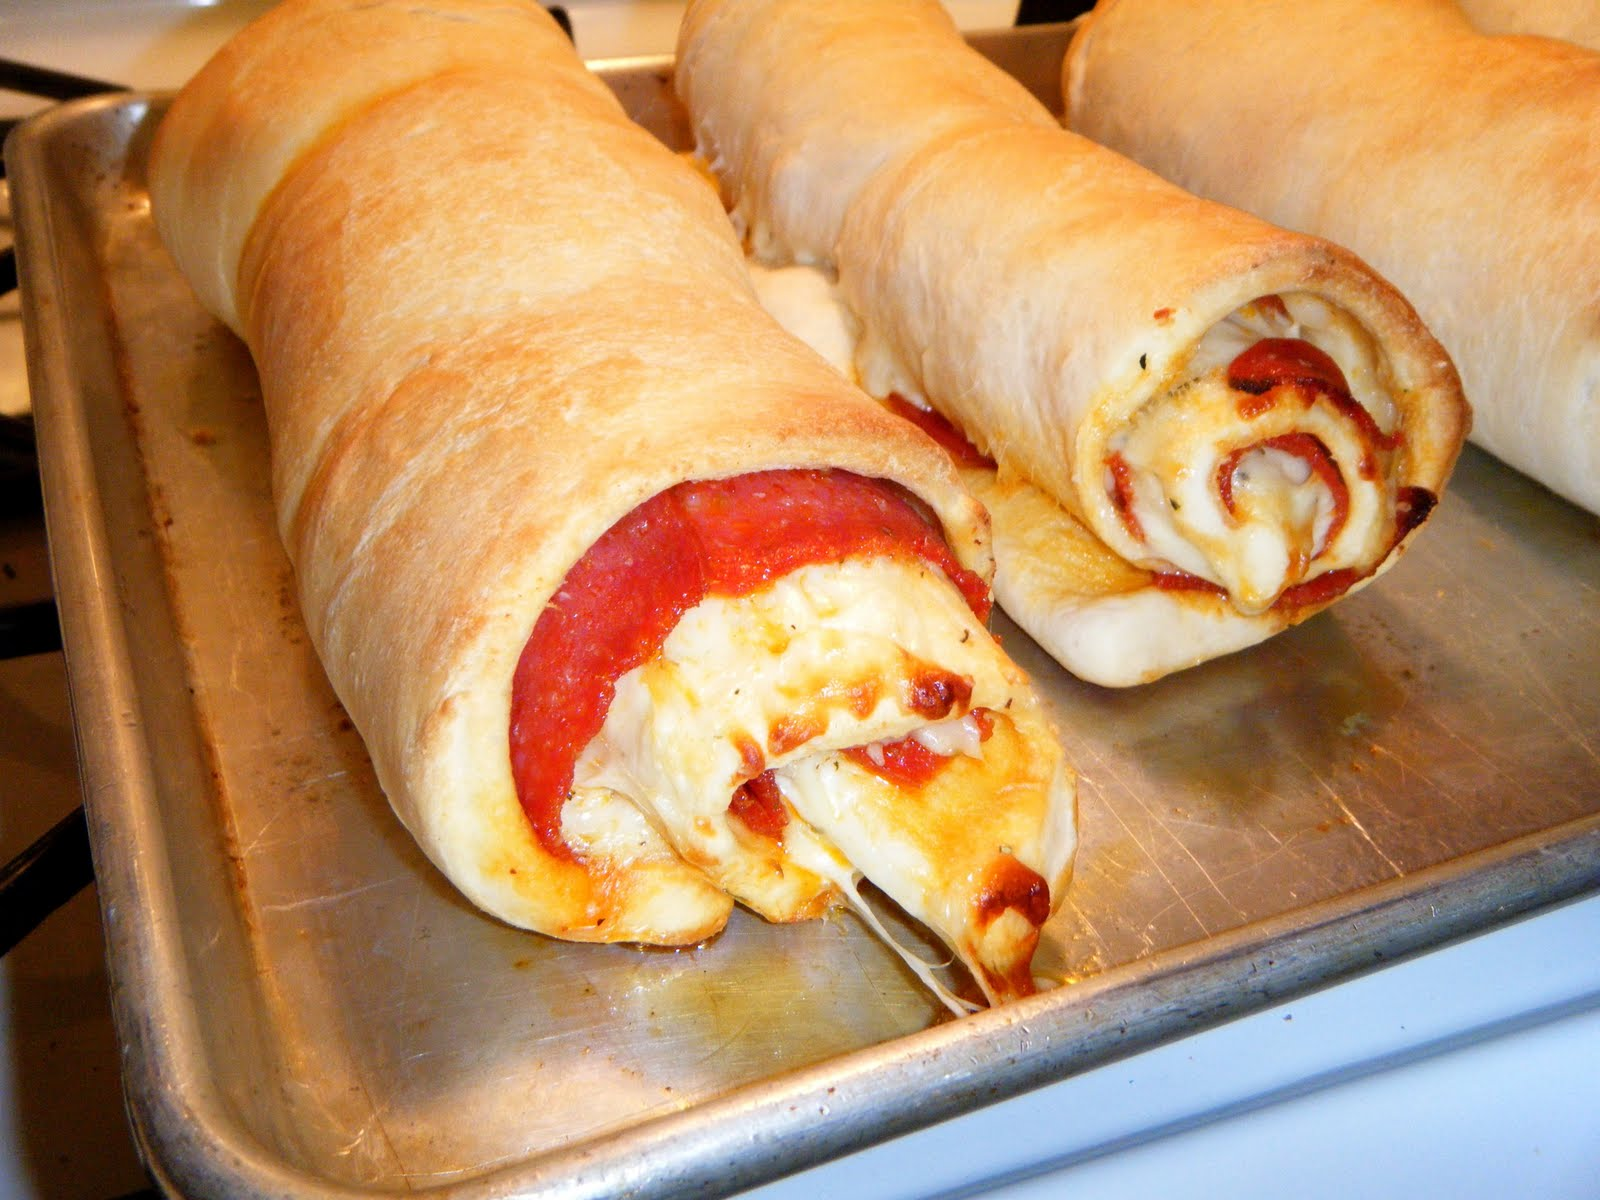 Jun 14, · Spread it out and cover it with the pizza sauce. Cover that with the Mozzarella cheese and then with the Parmesan cheese. Starting from the long end, roll up dough and wrap in parchment. Place in freezer for 15 minutes to chill. Meanwhile, melt the butter in a small bowl. Remove dough log from freezer and slice into 1 1/2″ antminekraft85.tkgs: 8.